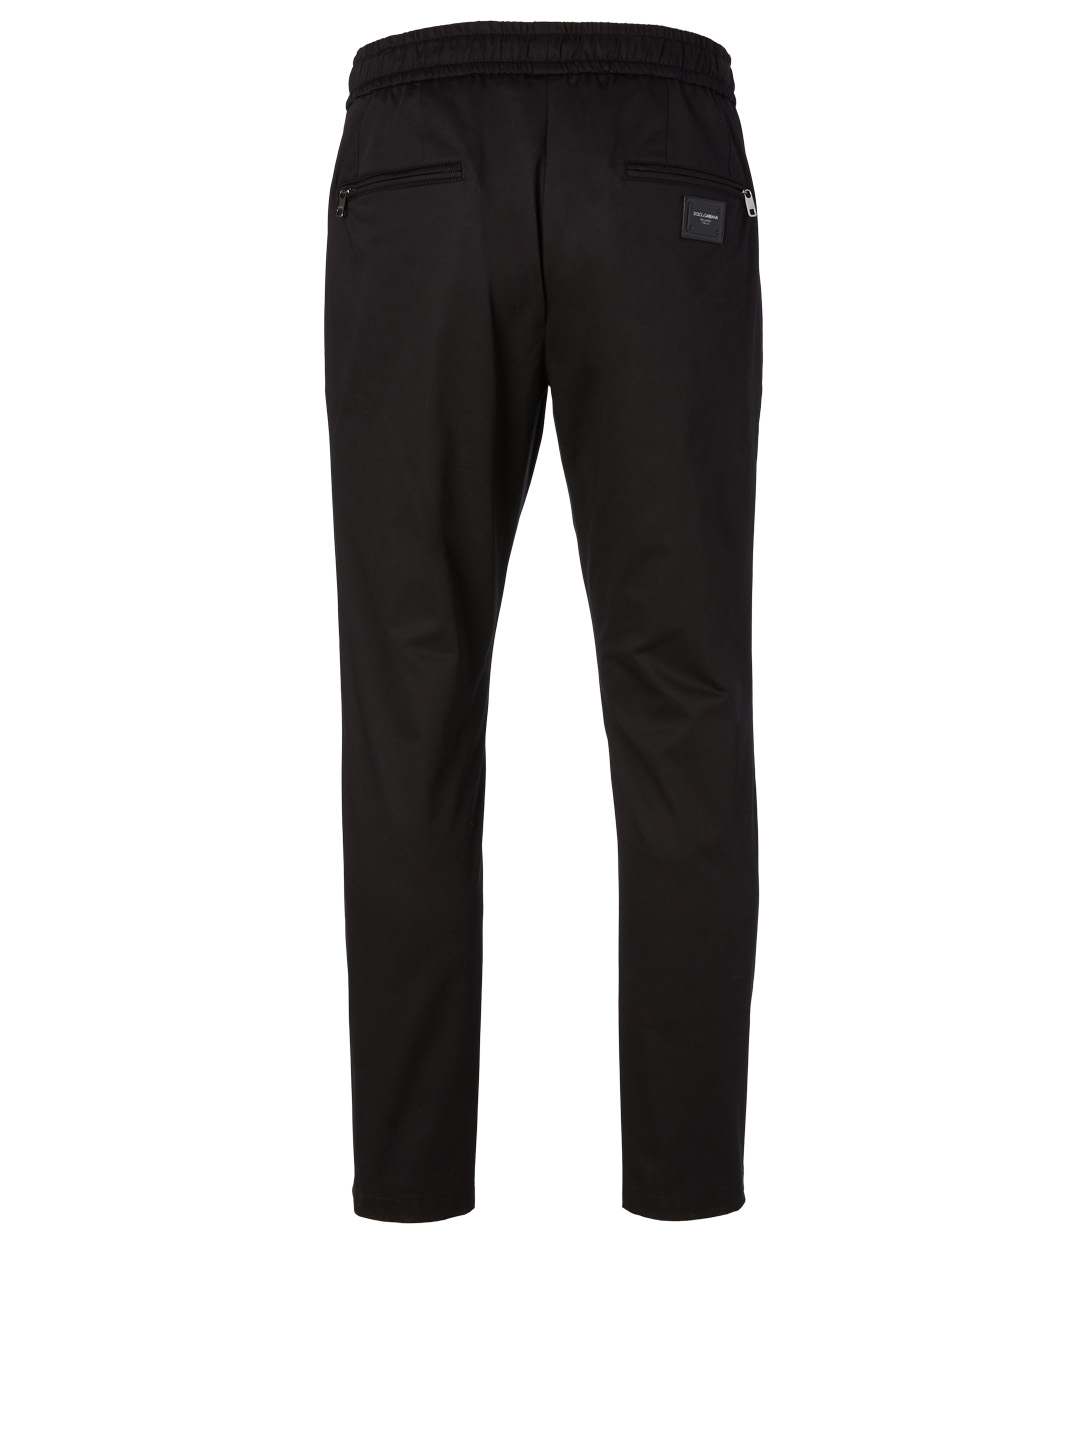 DOLCE & GABBANA Slim Drawstring Pants Men's Black